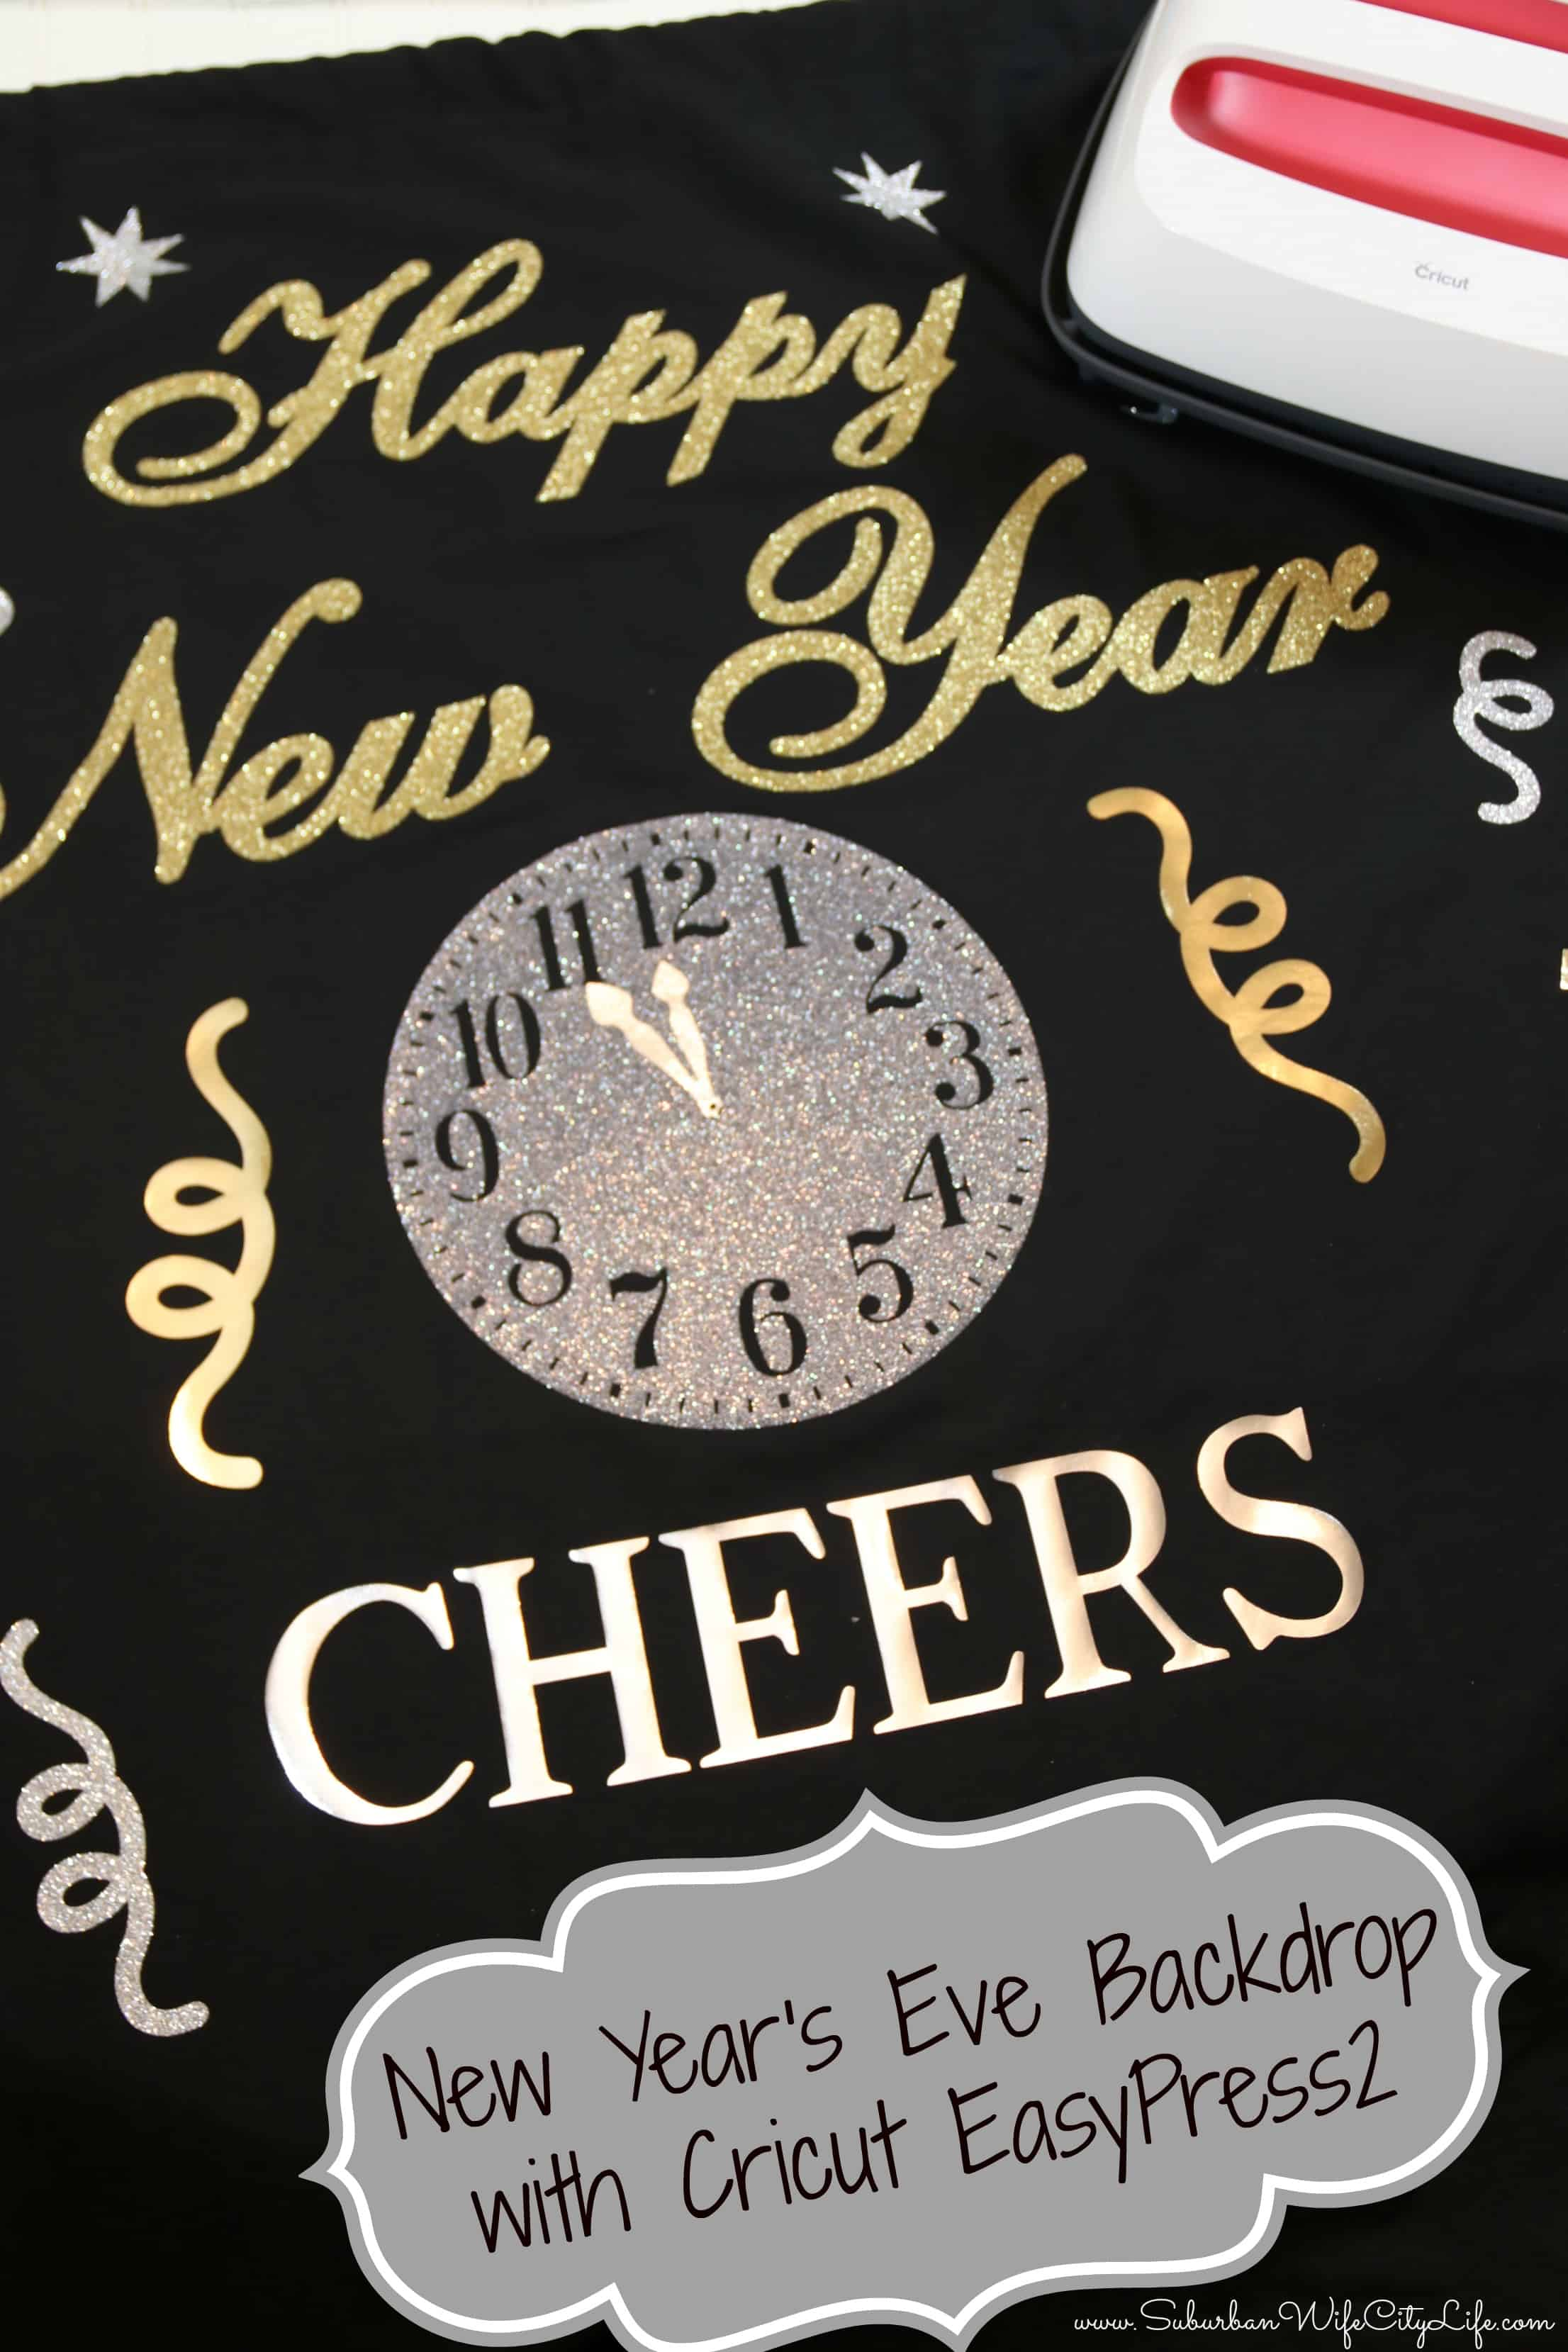 New Year's Eve Backdrop with Cricut EasyPress 2 #Cricutmade #ad